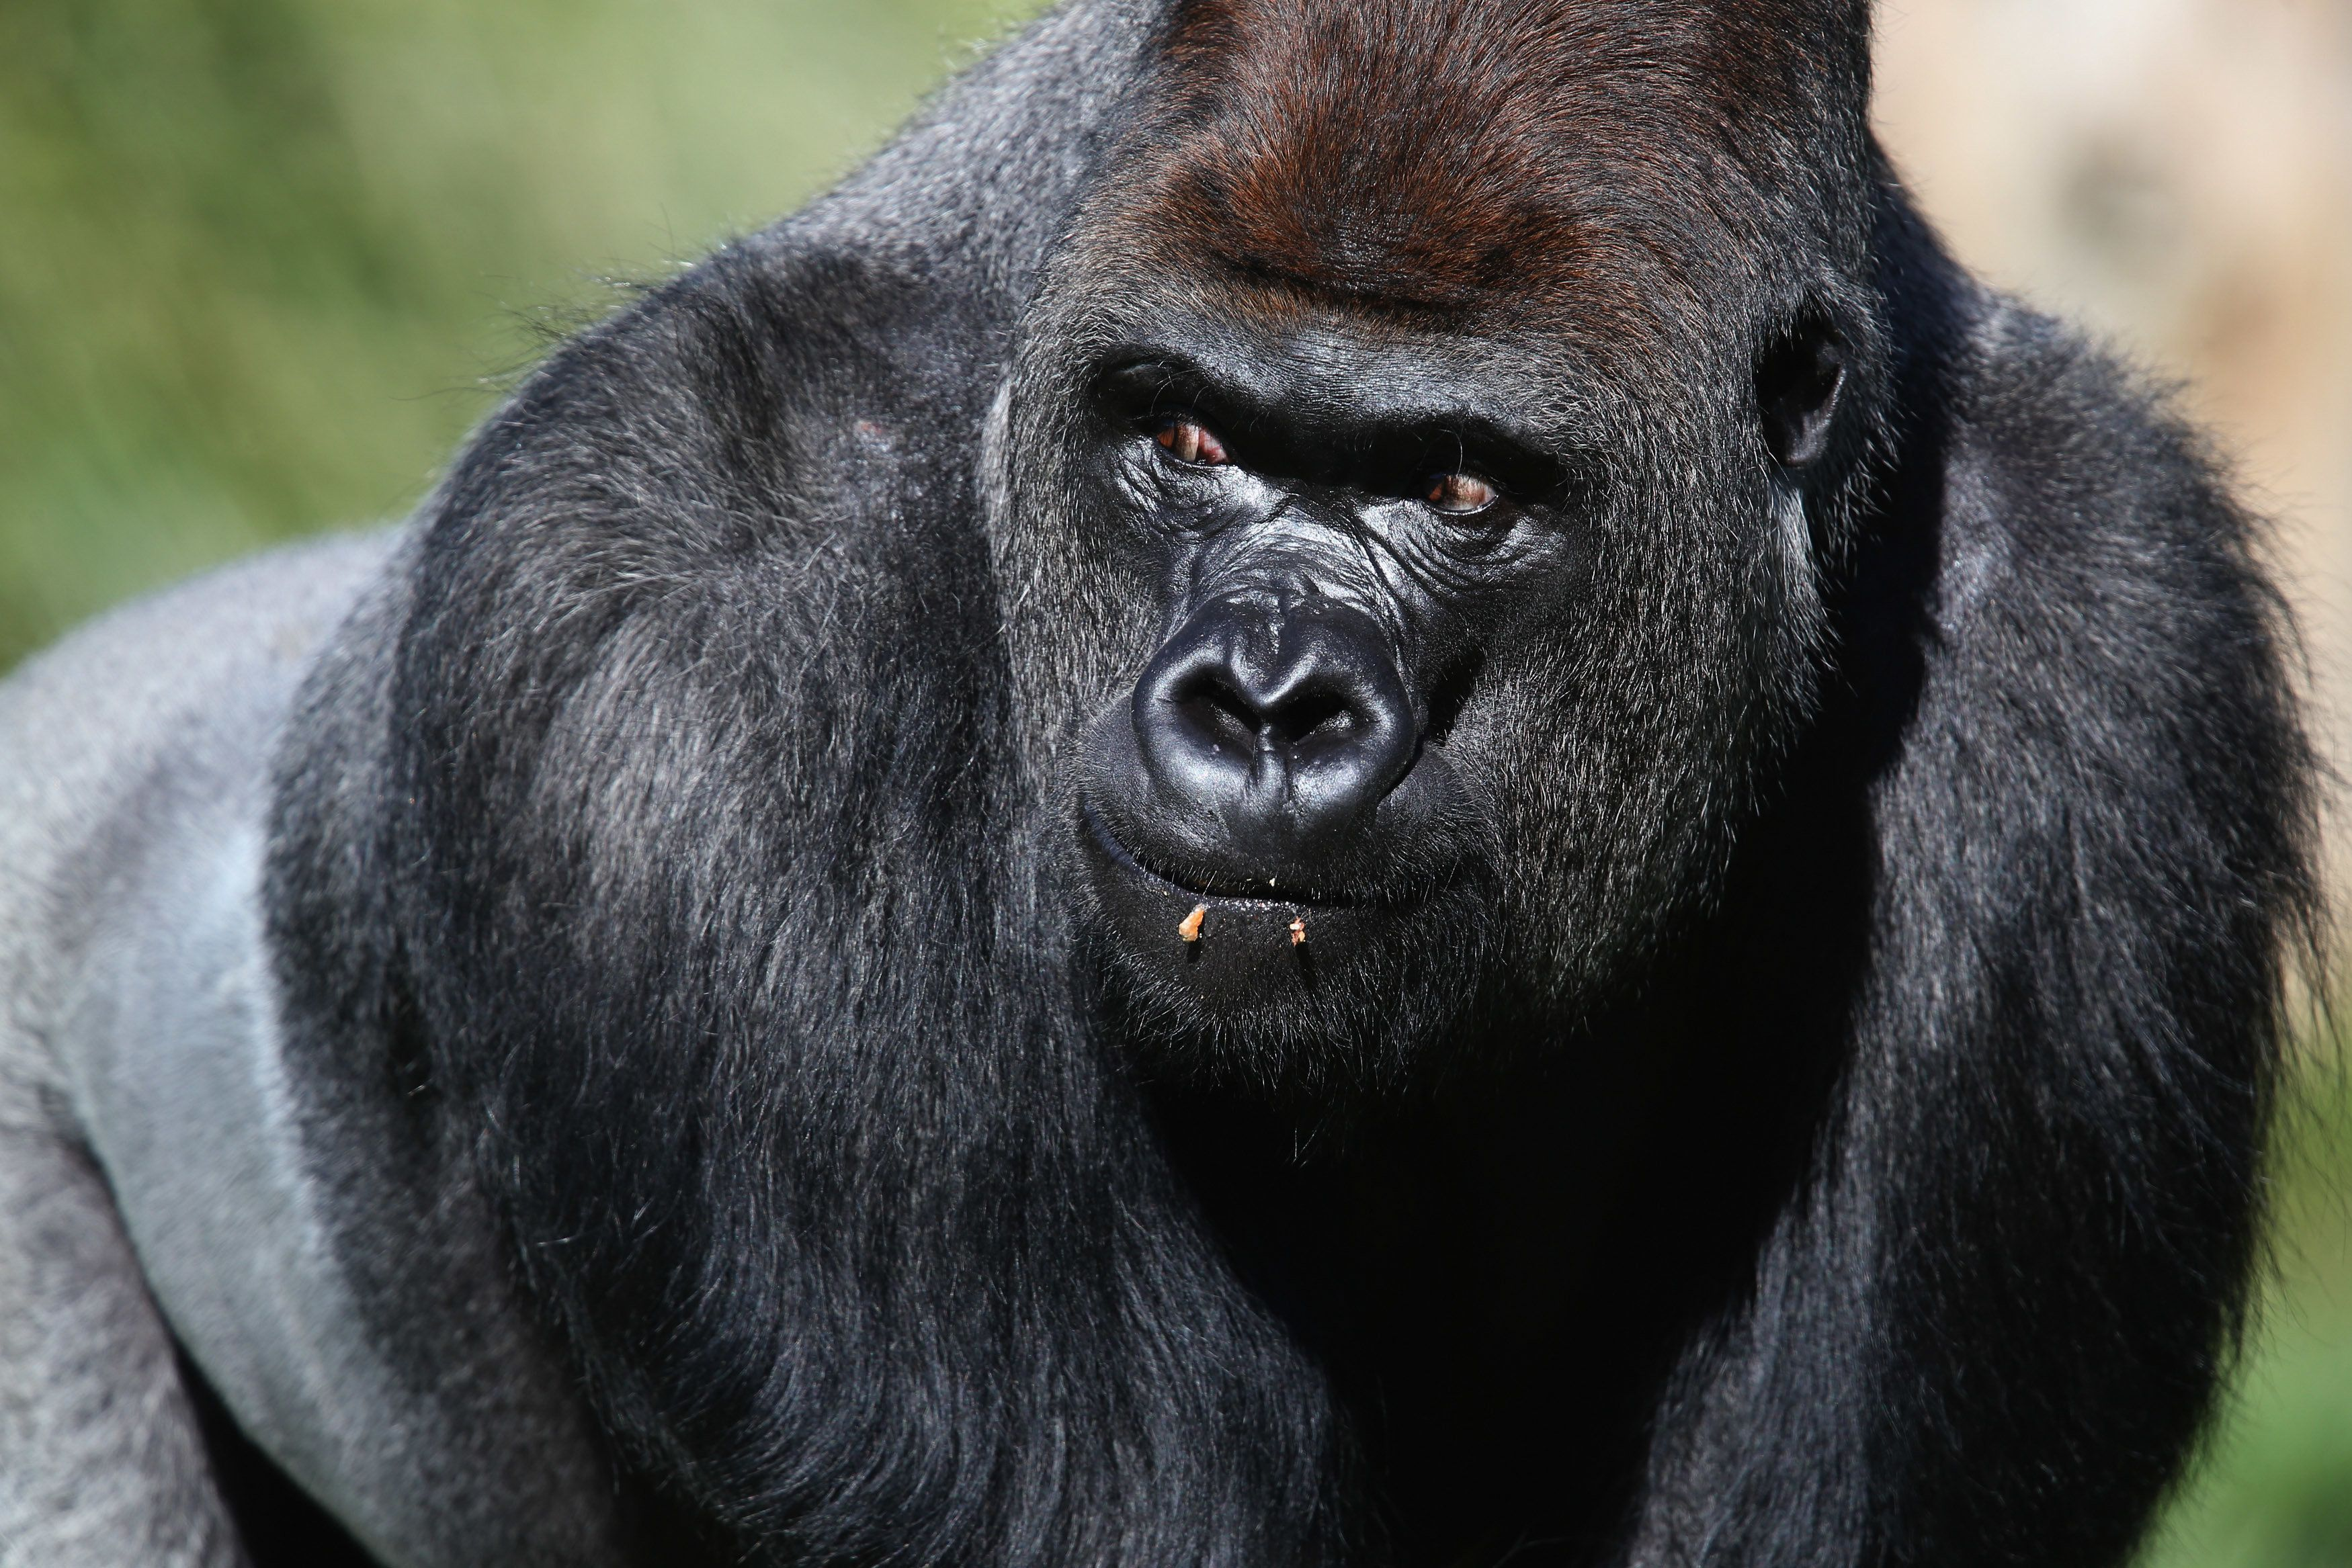 The £5m For London Zoo Gorilla's Enclosure Could Have Been 'Far Better Used' Claims Wildlife